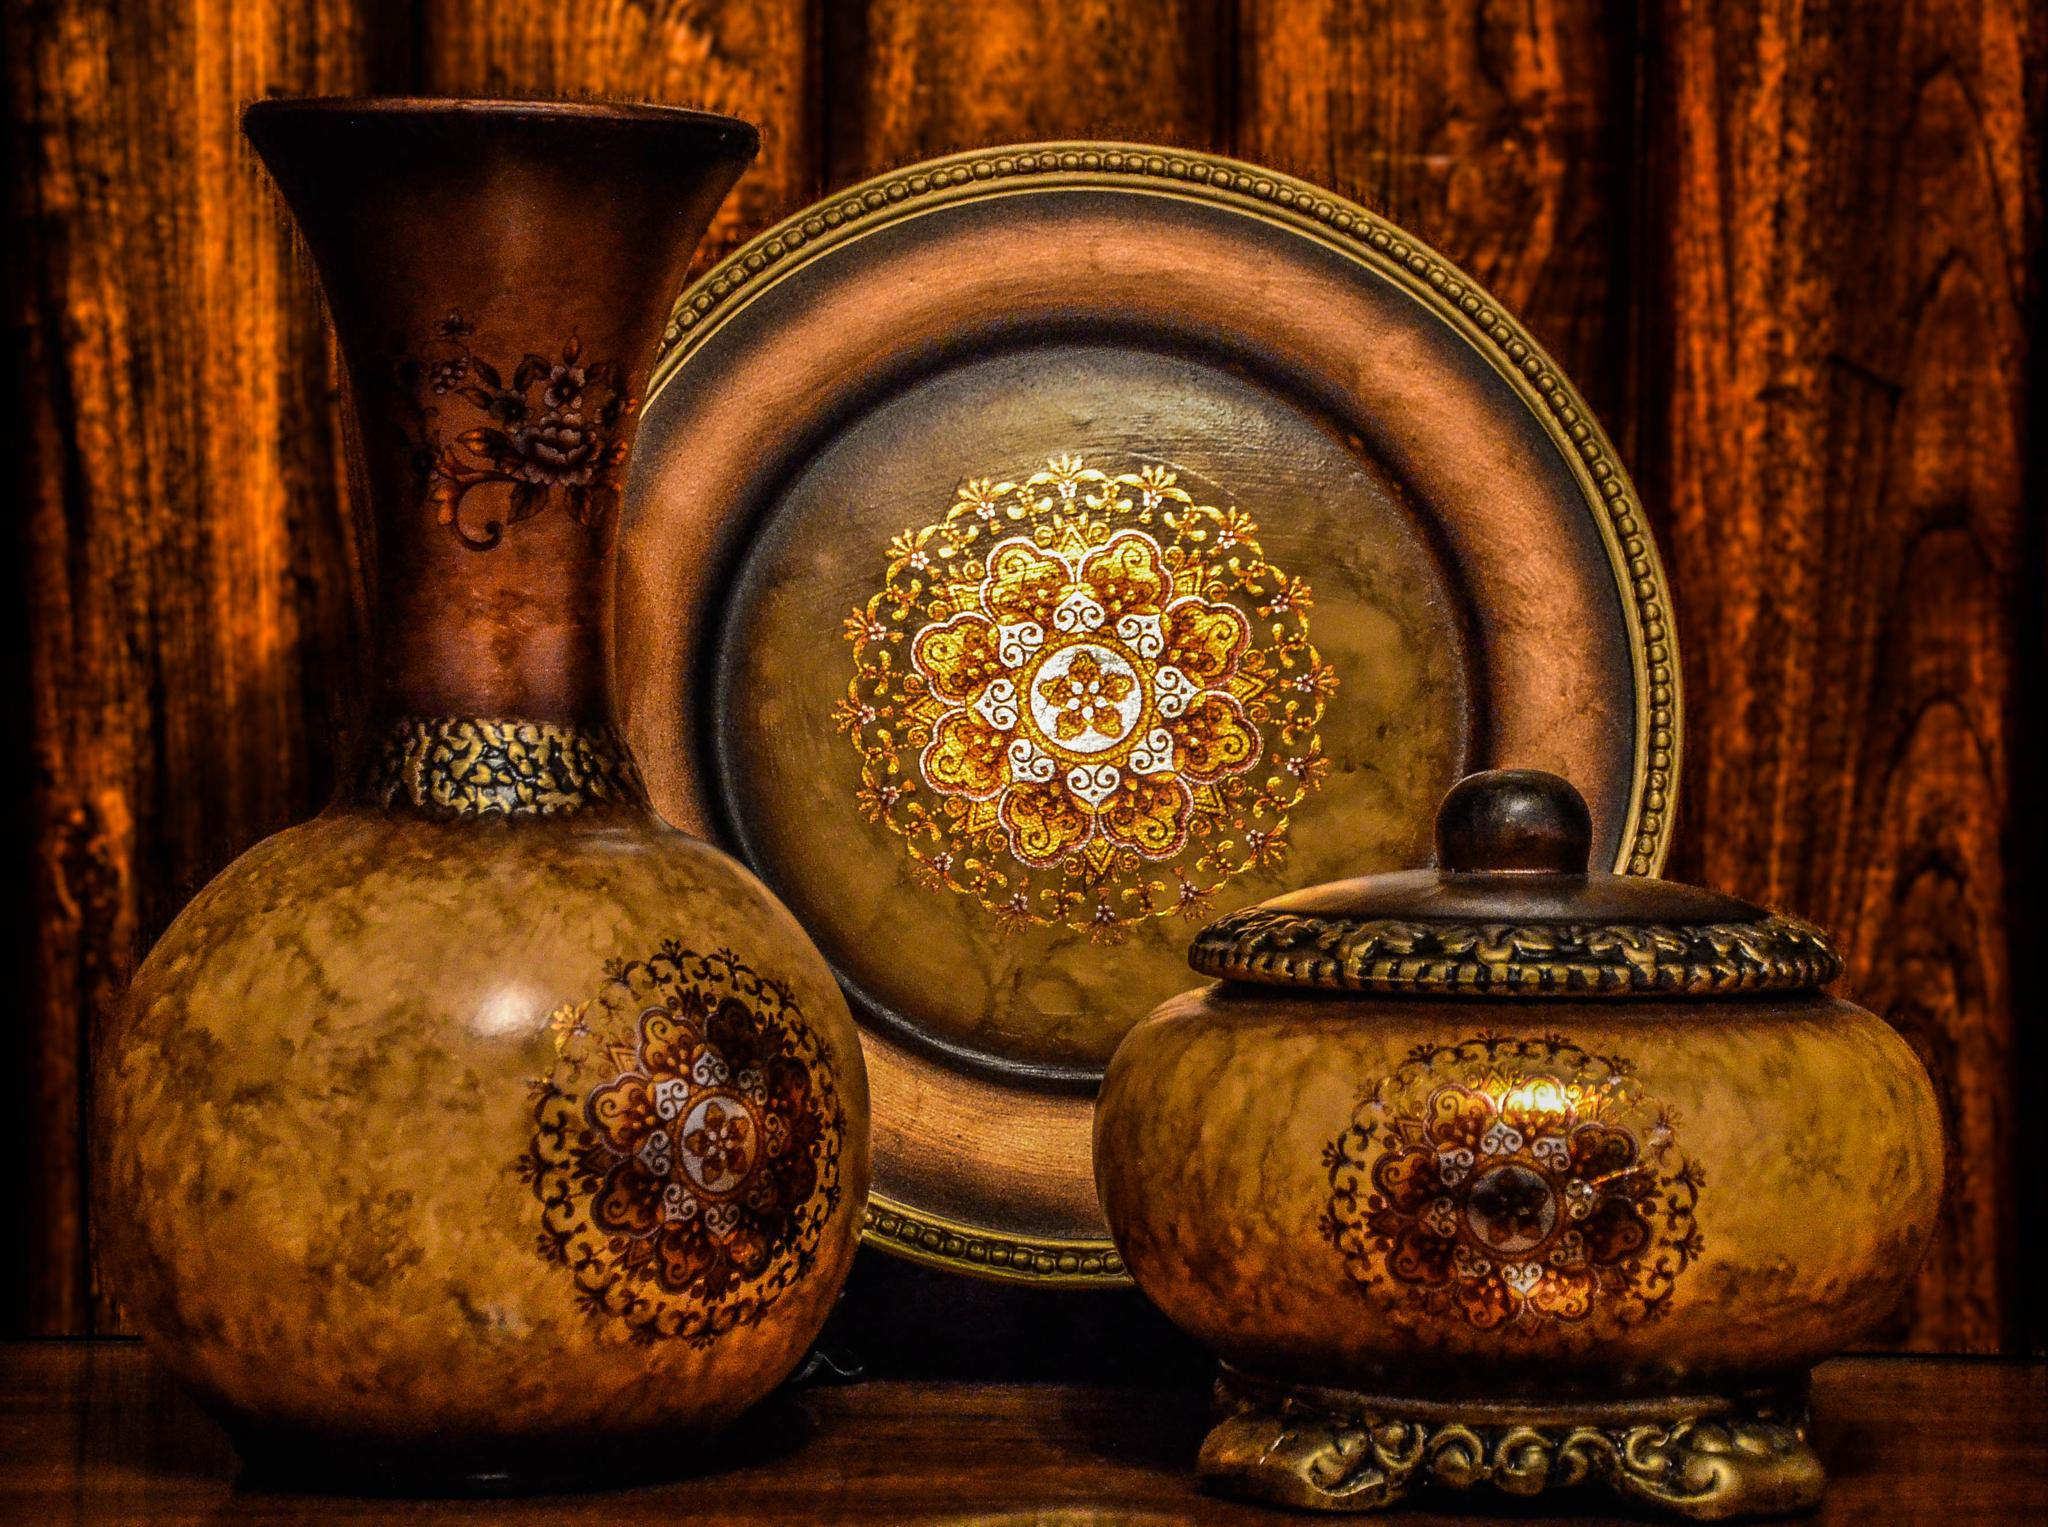 The Potteries by Imed Photography